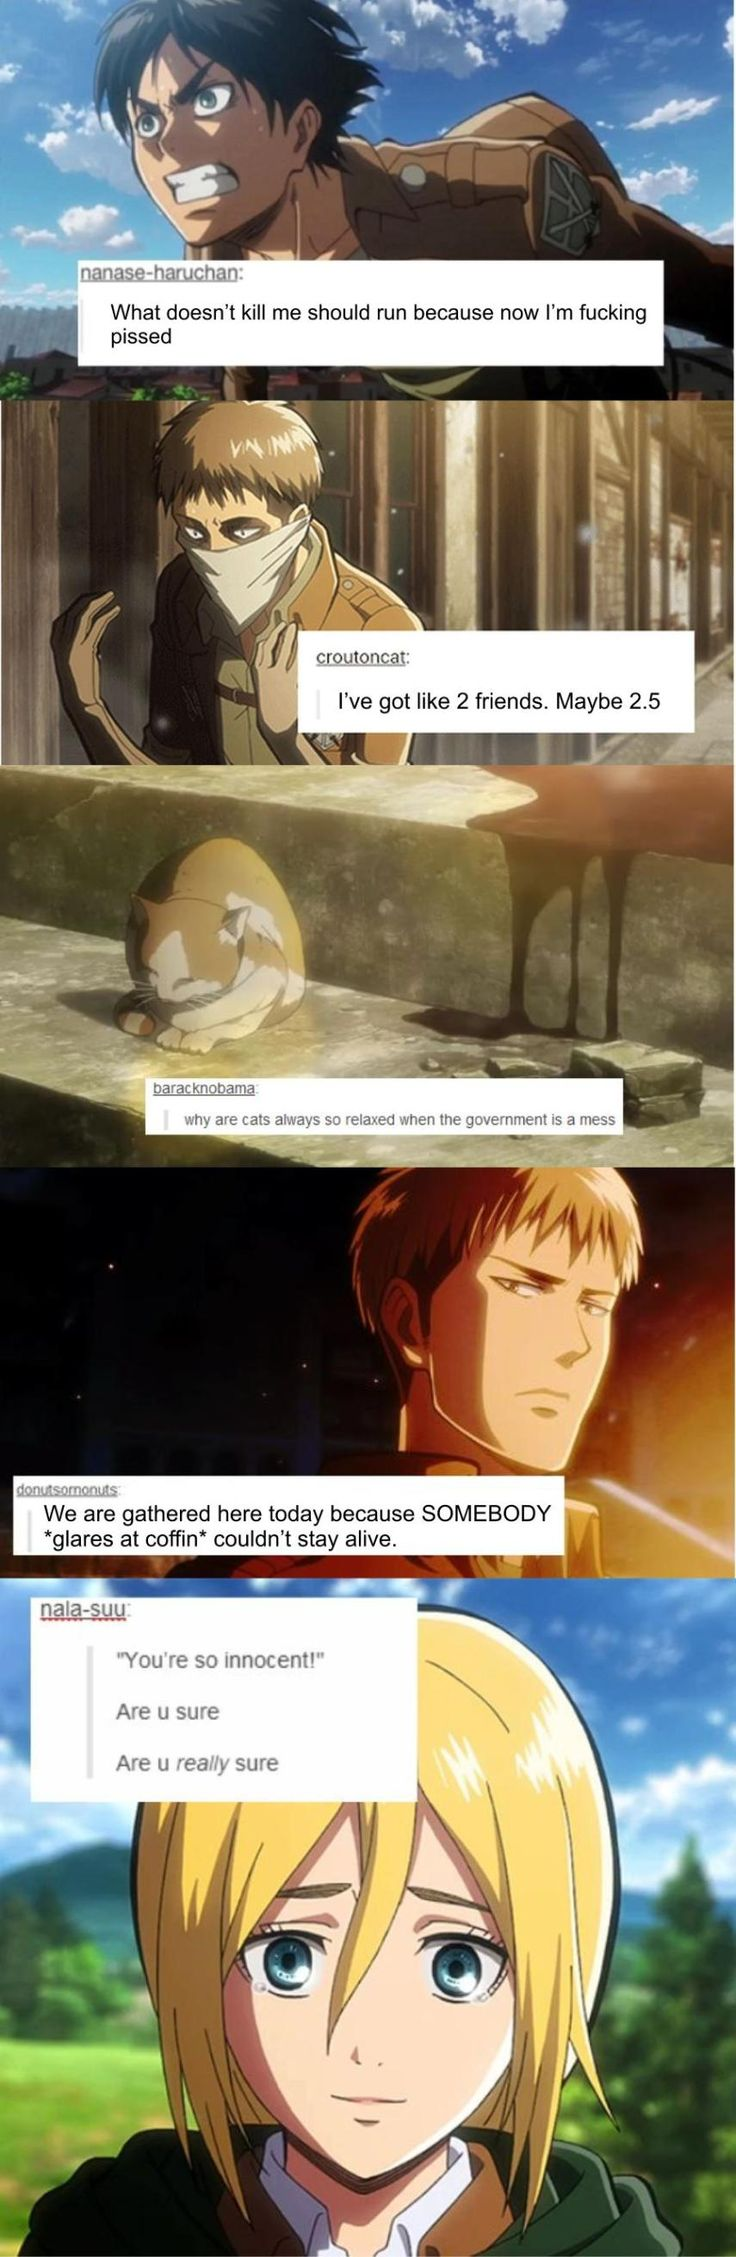 If you have been reading the latest chapters of AoT, then you would understand the last post